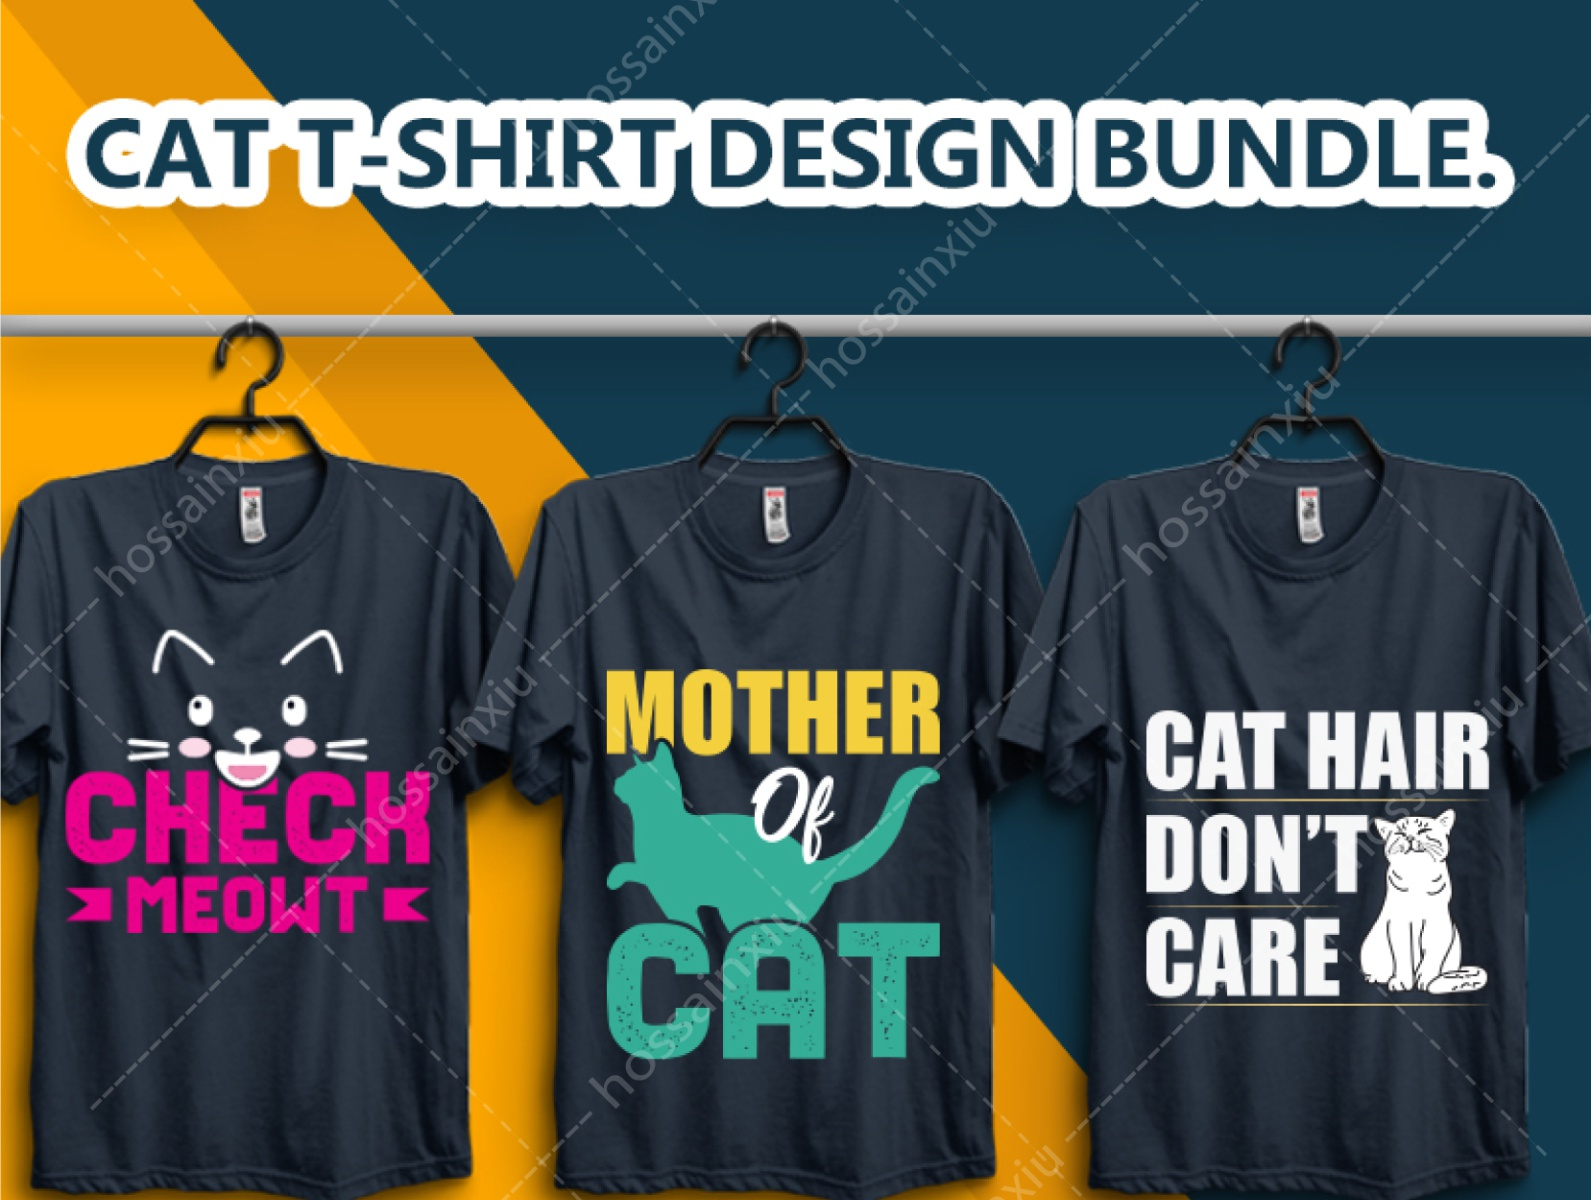 New Cat T Shirt Design By Amzad On Dribbble